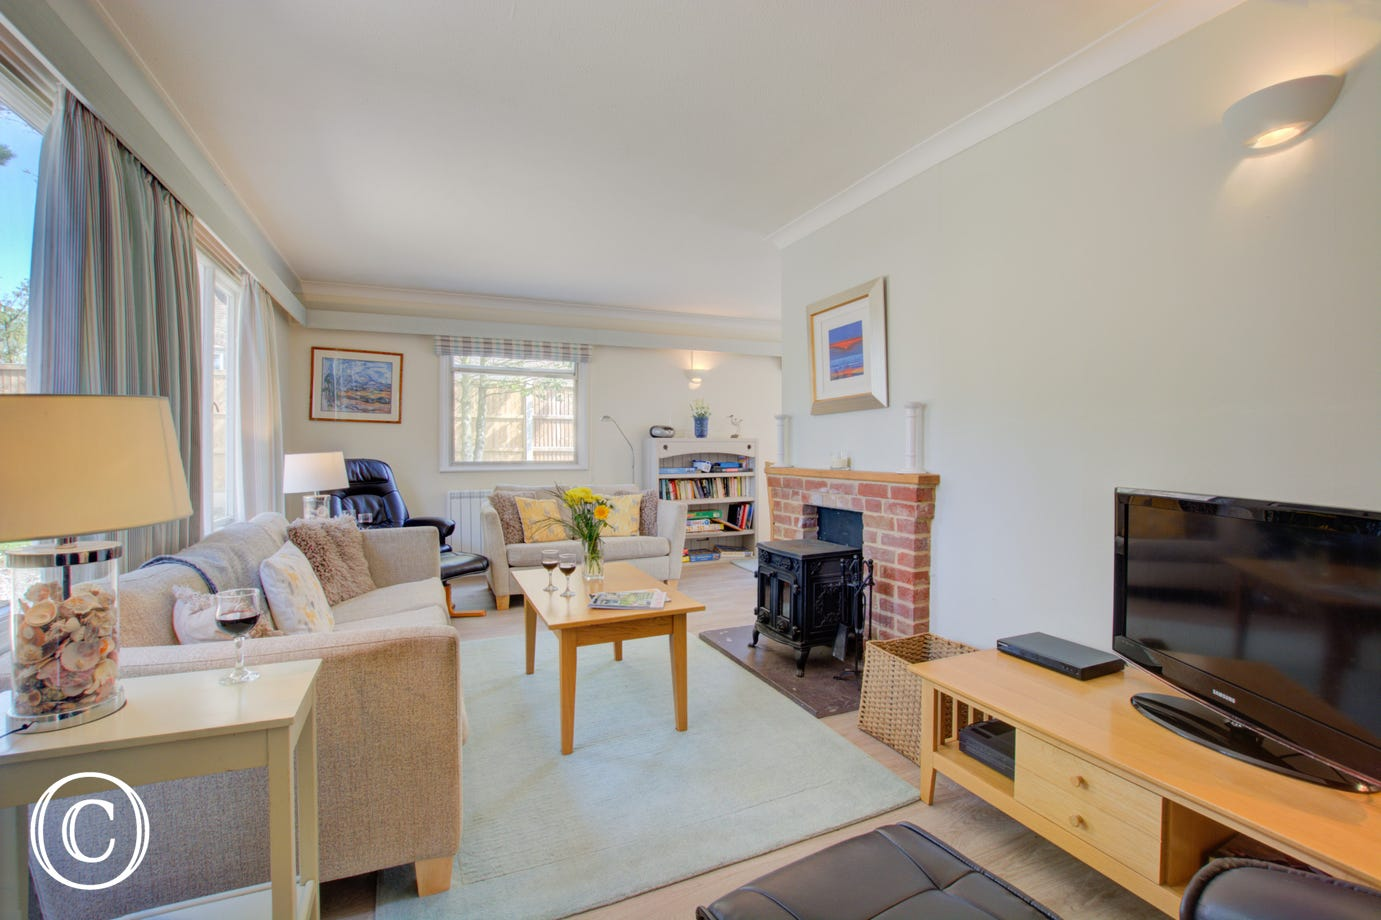 An attractive well-furnished room which has large picture windows, comfortable seating and a woodburner.